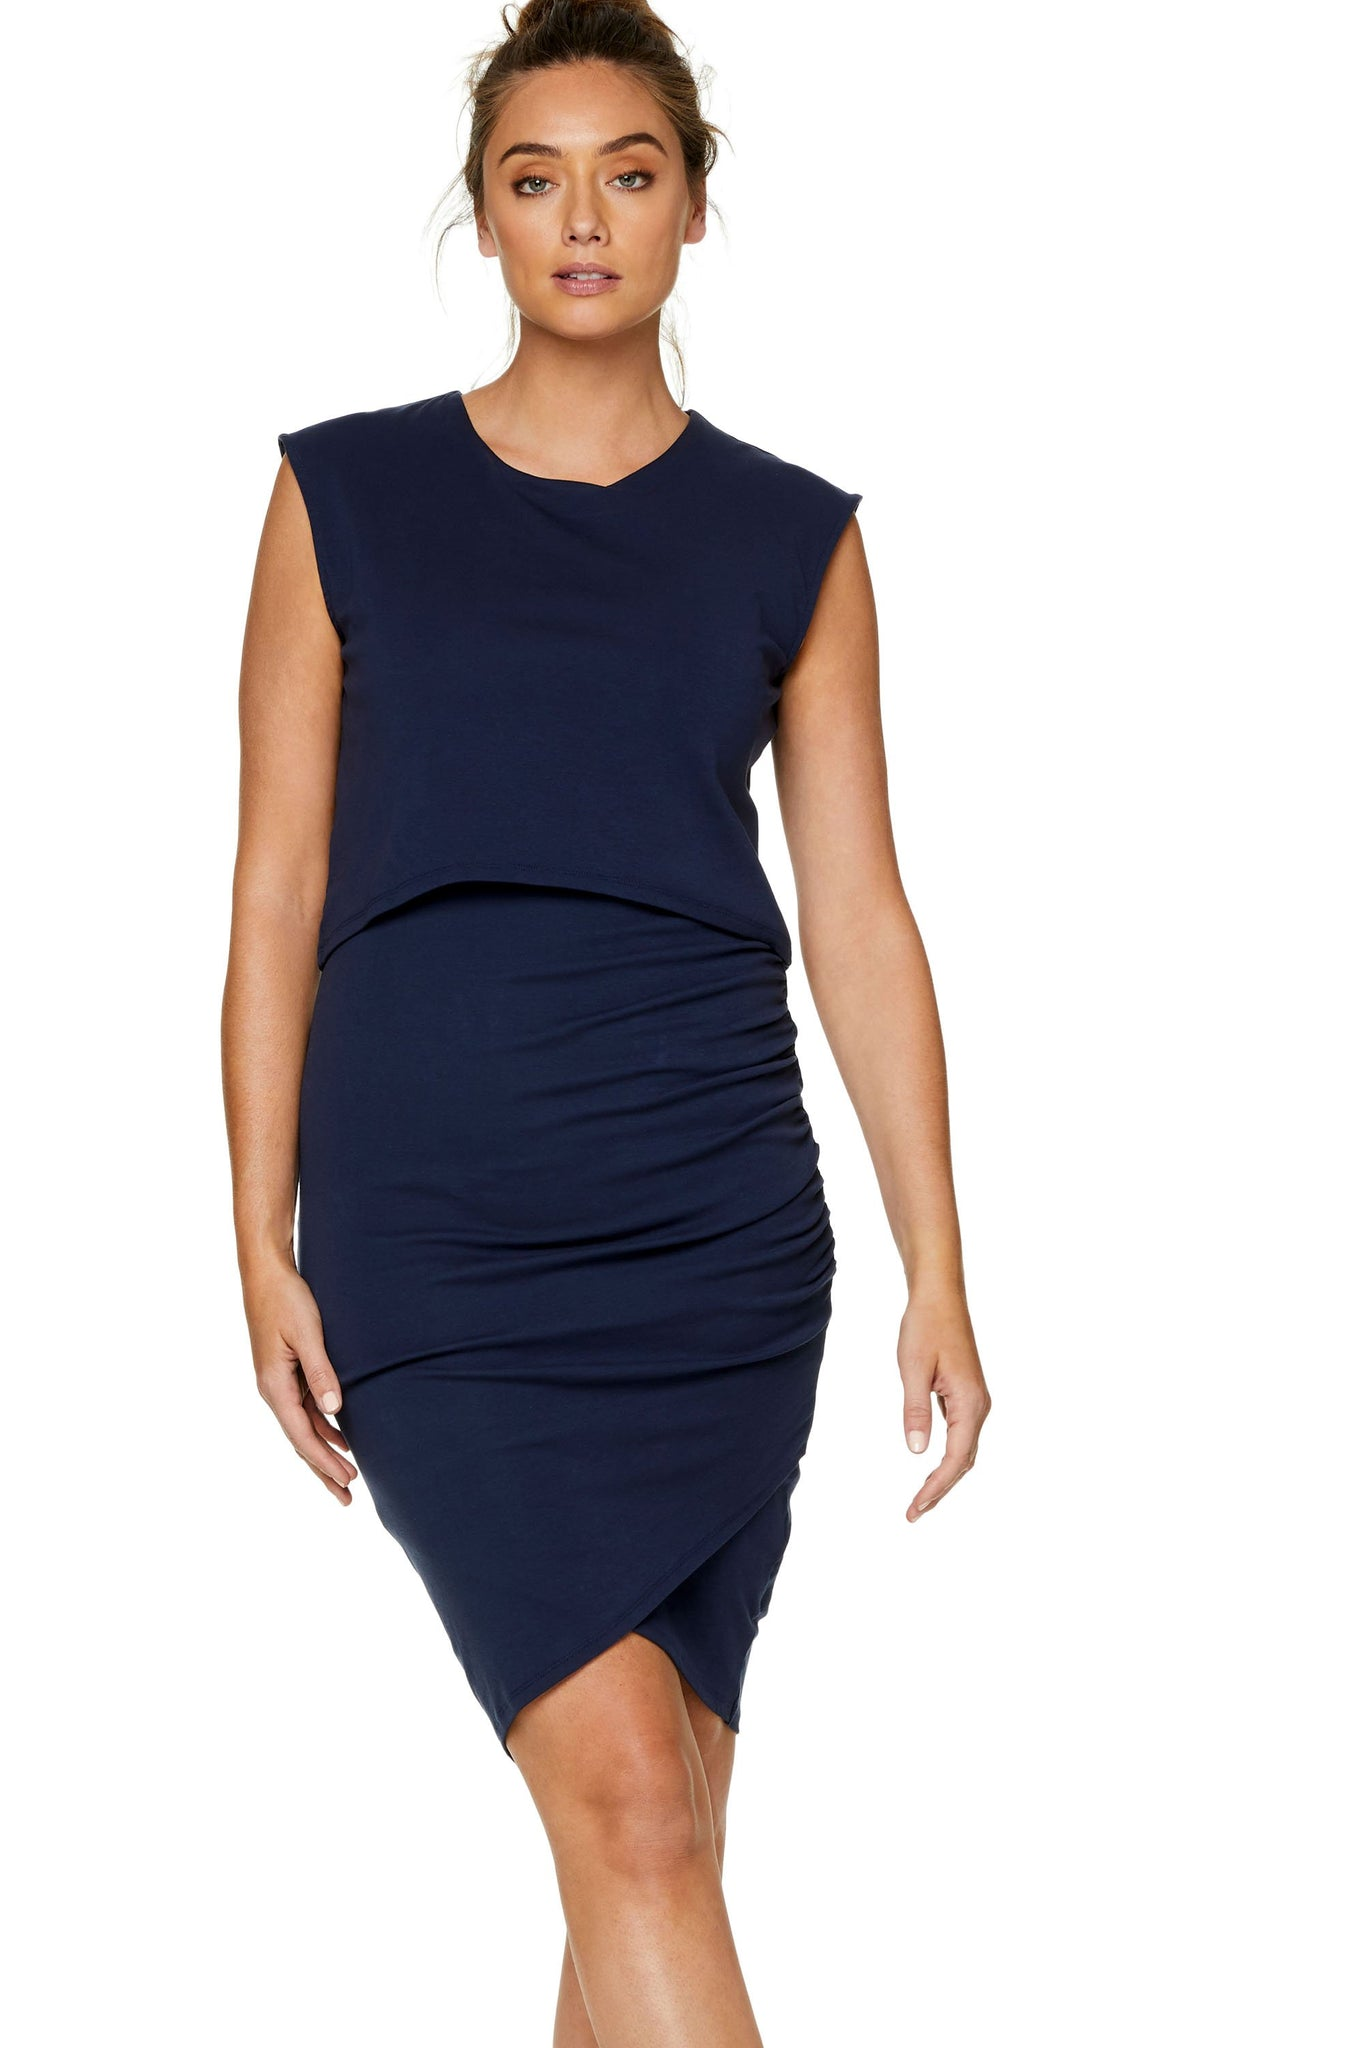 maternity nursing dress - navy 7